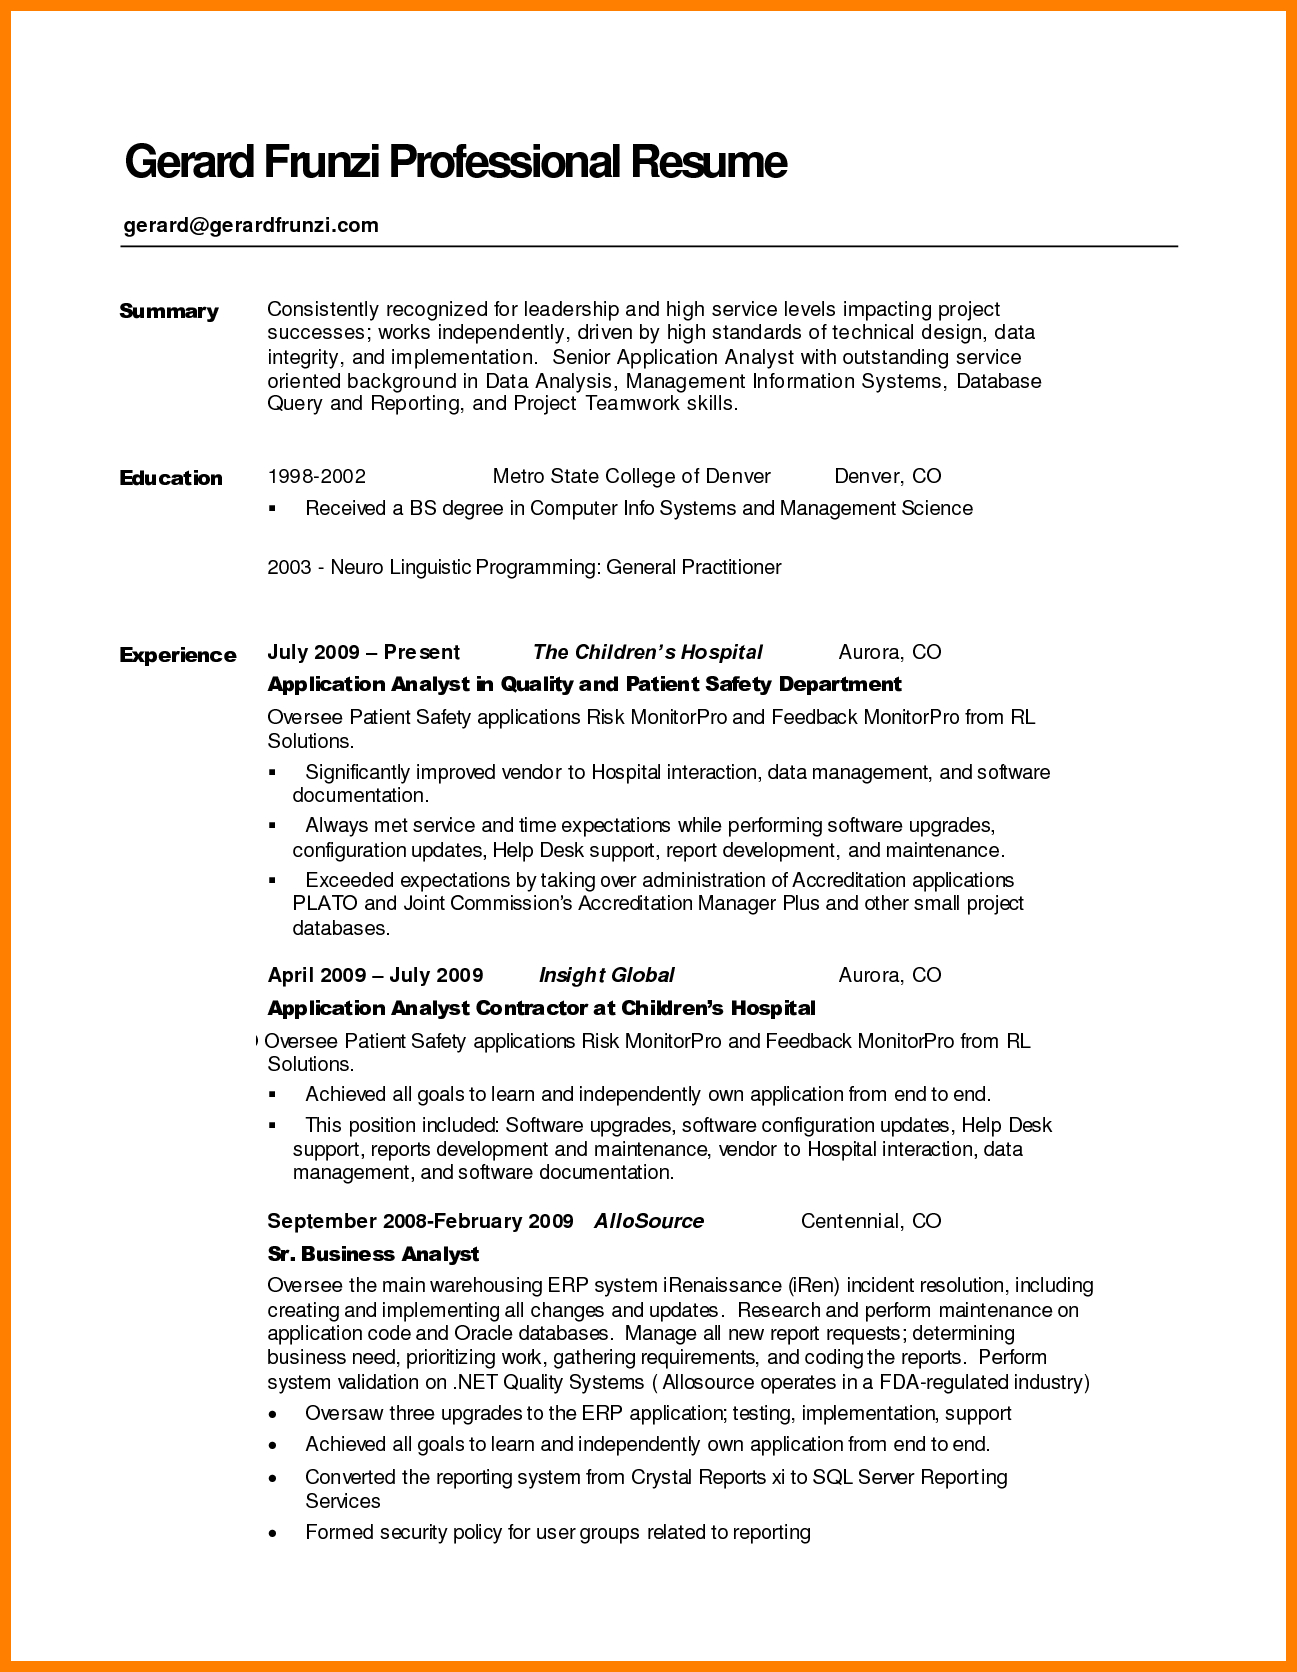 Letter Of Intent Contract | Construction Contract Letter Of Intent Template Poemdoc Or